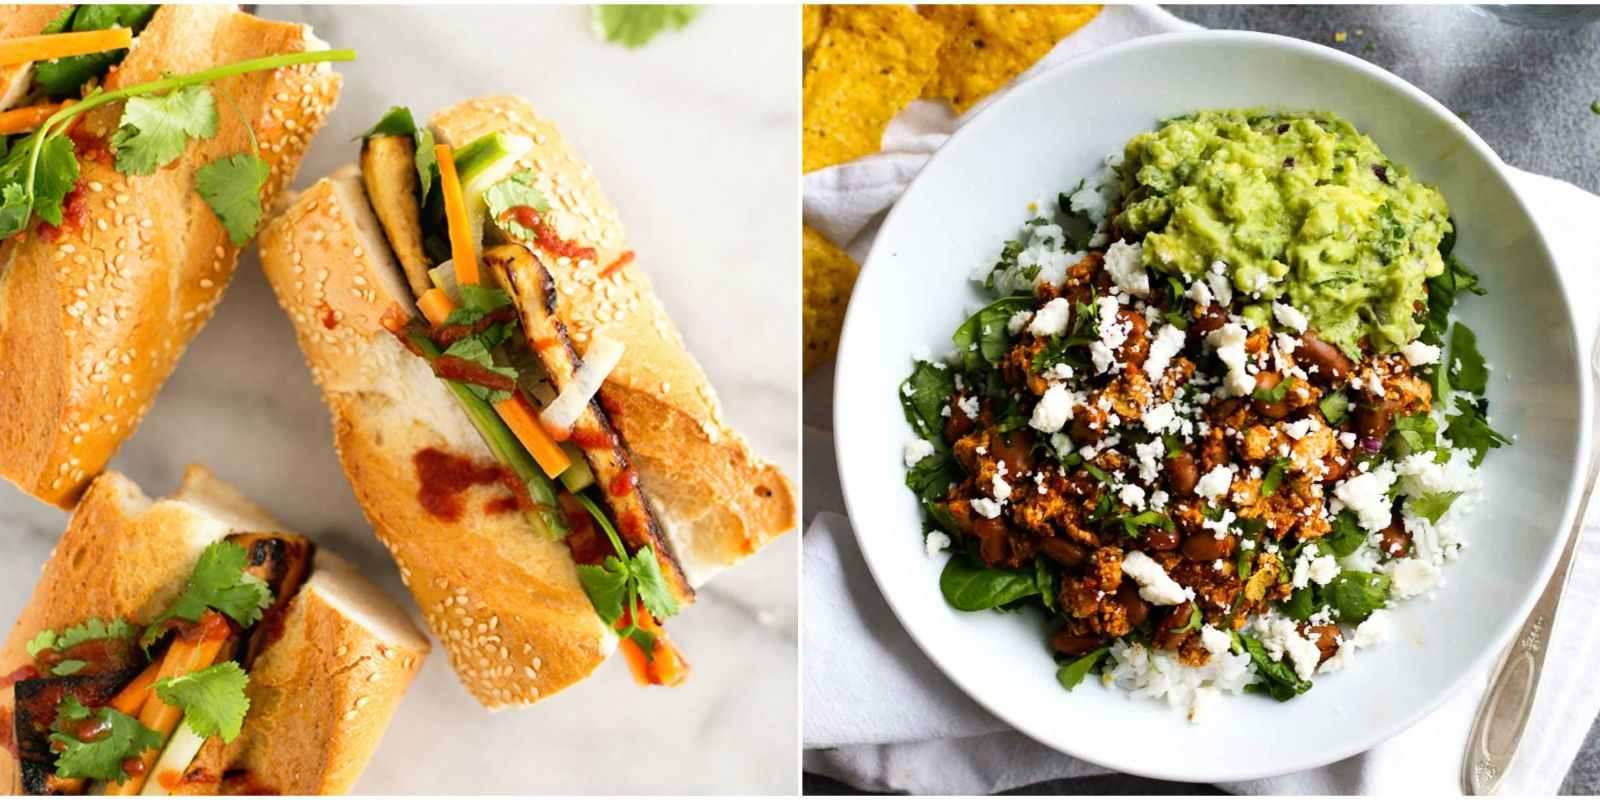 An easy dinner for kids can still be a delicious meal for the adults! These simple recipes will make weeknight suppers totally stress-free.